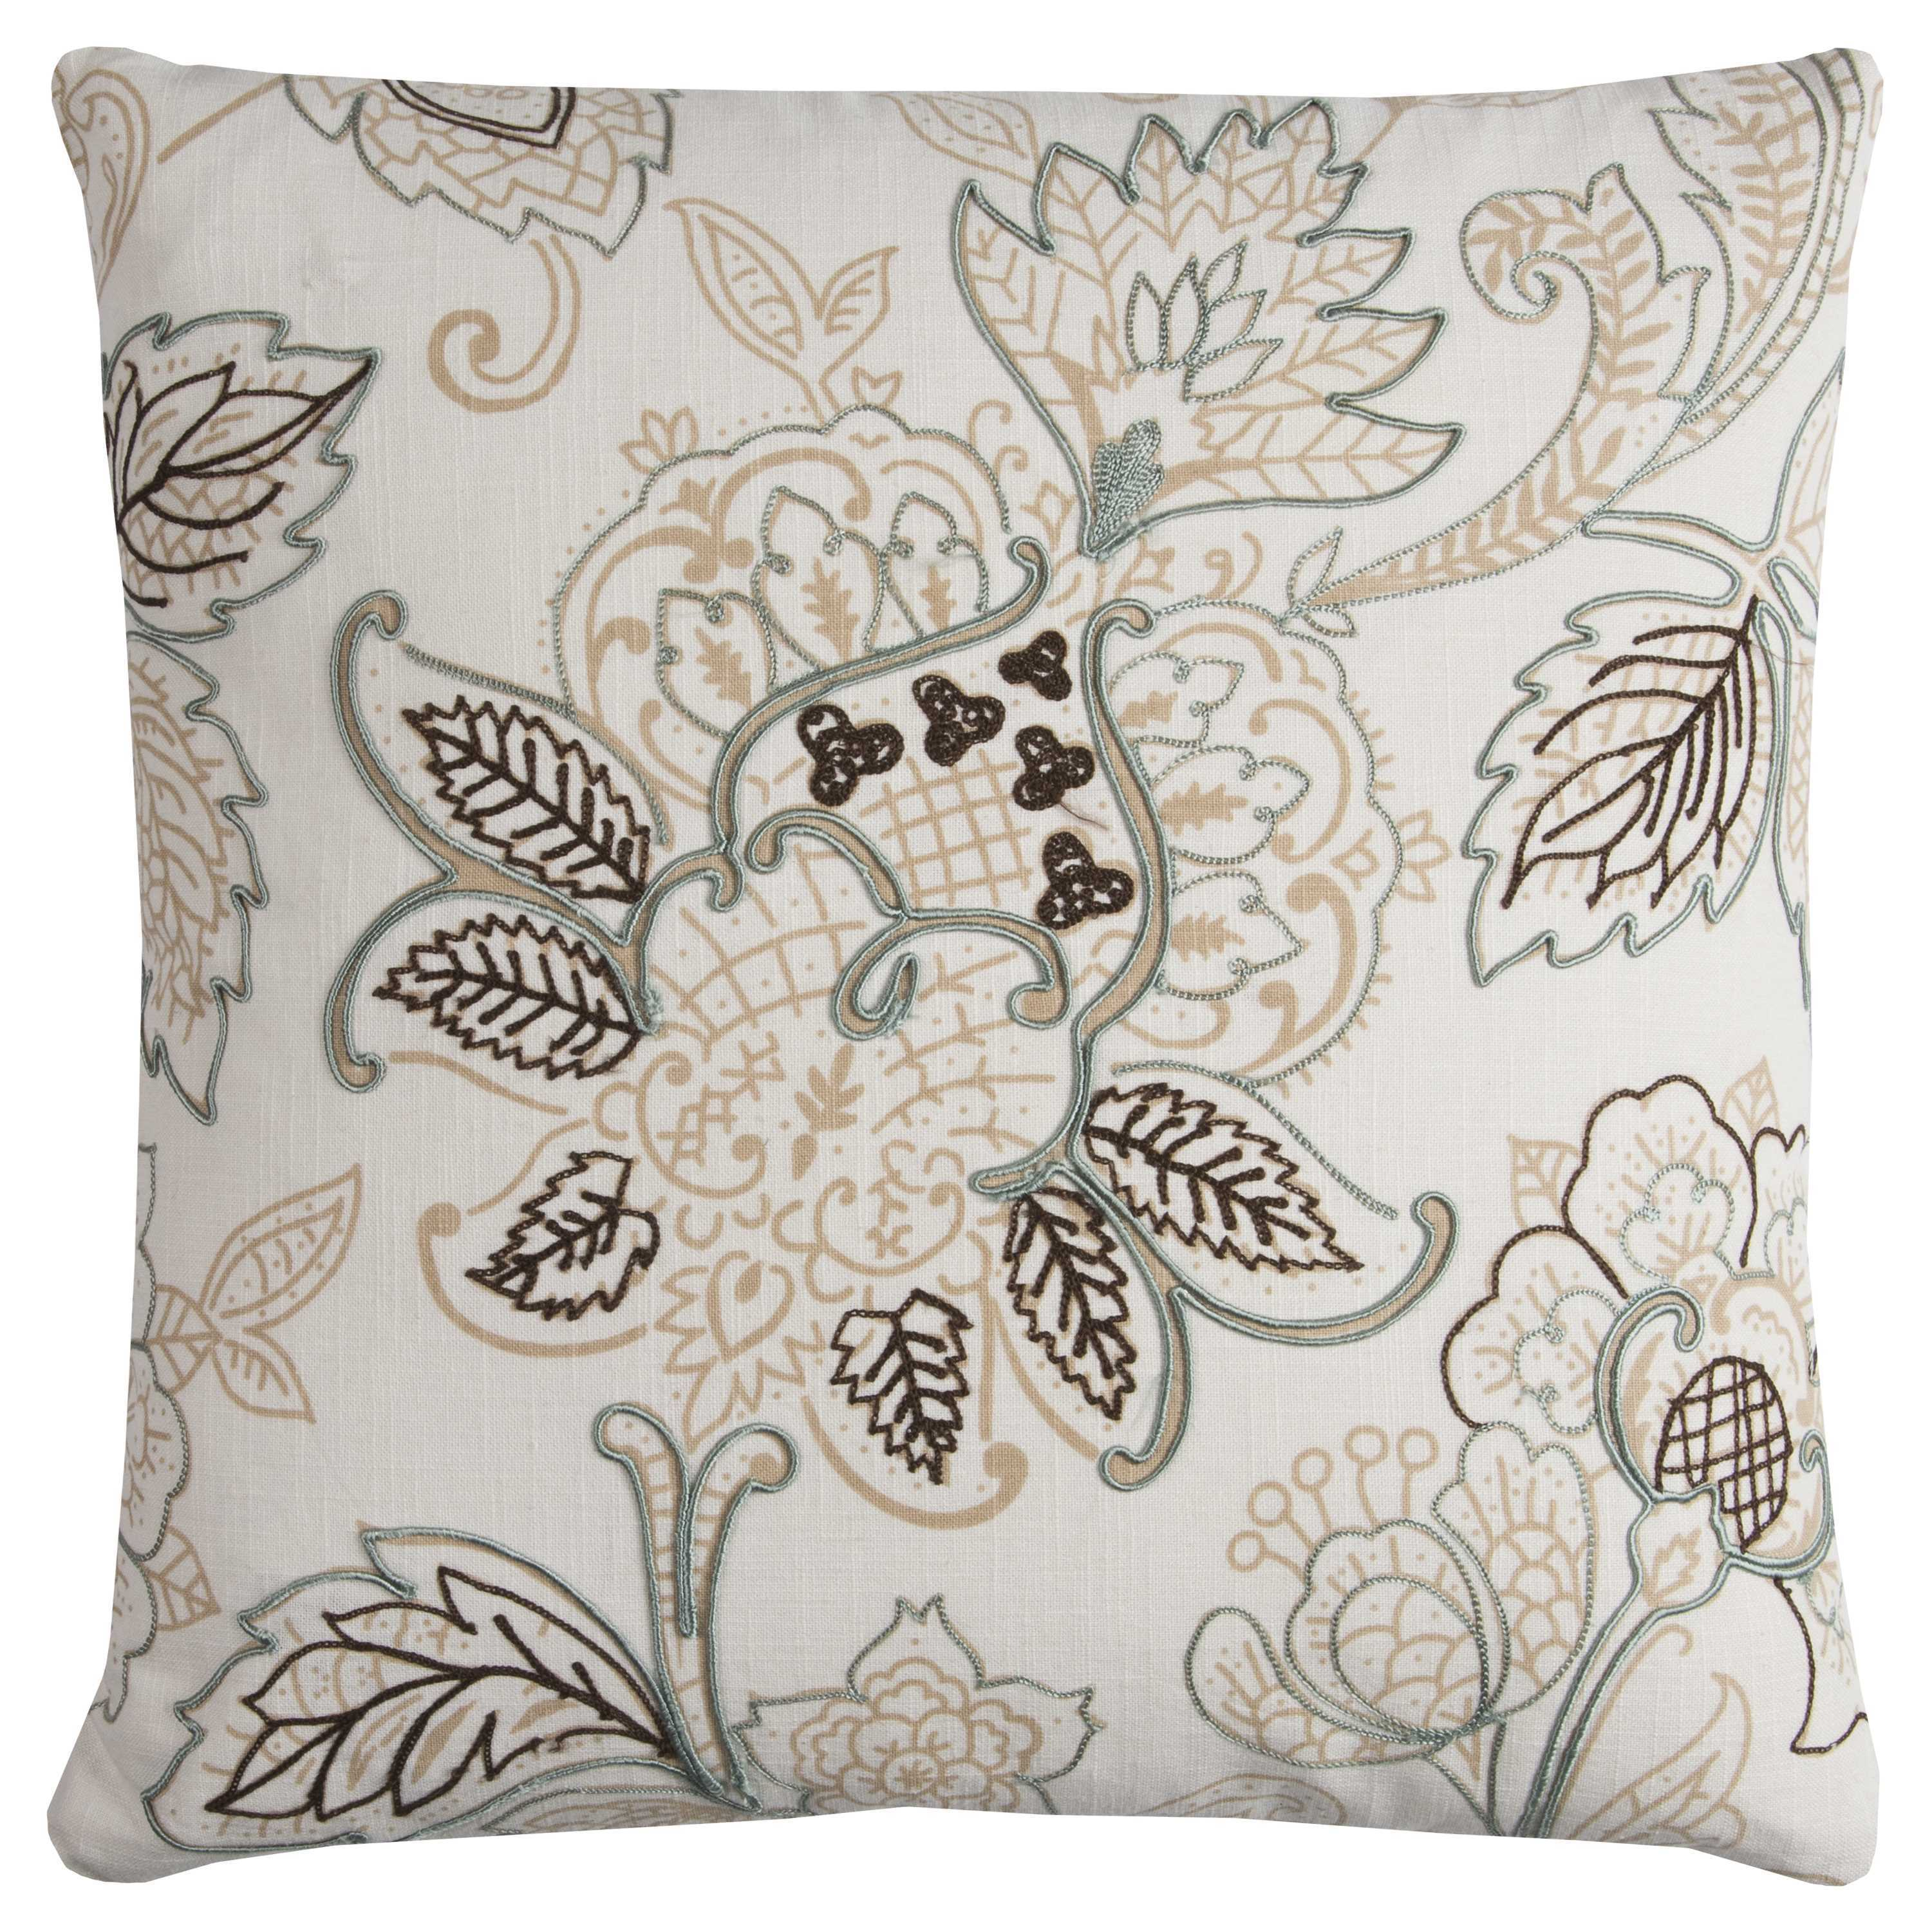 Rizzy Home Cotton 20-inch x 20-inch Floral Decorative Filled Throw Pillow (20 x 20 Natural FLORAL)